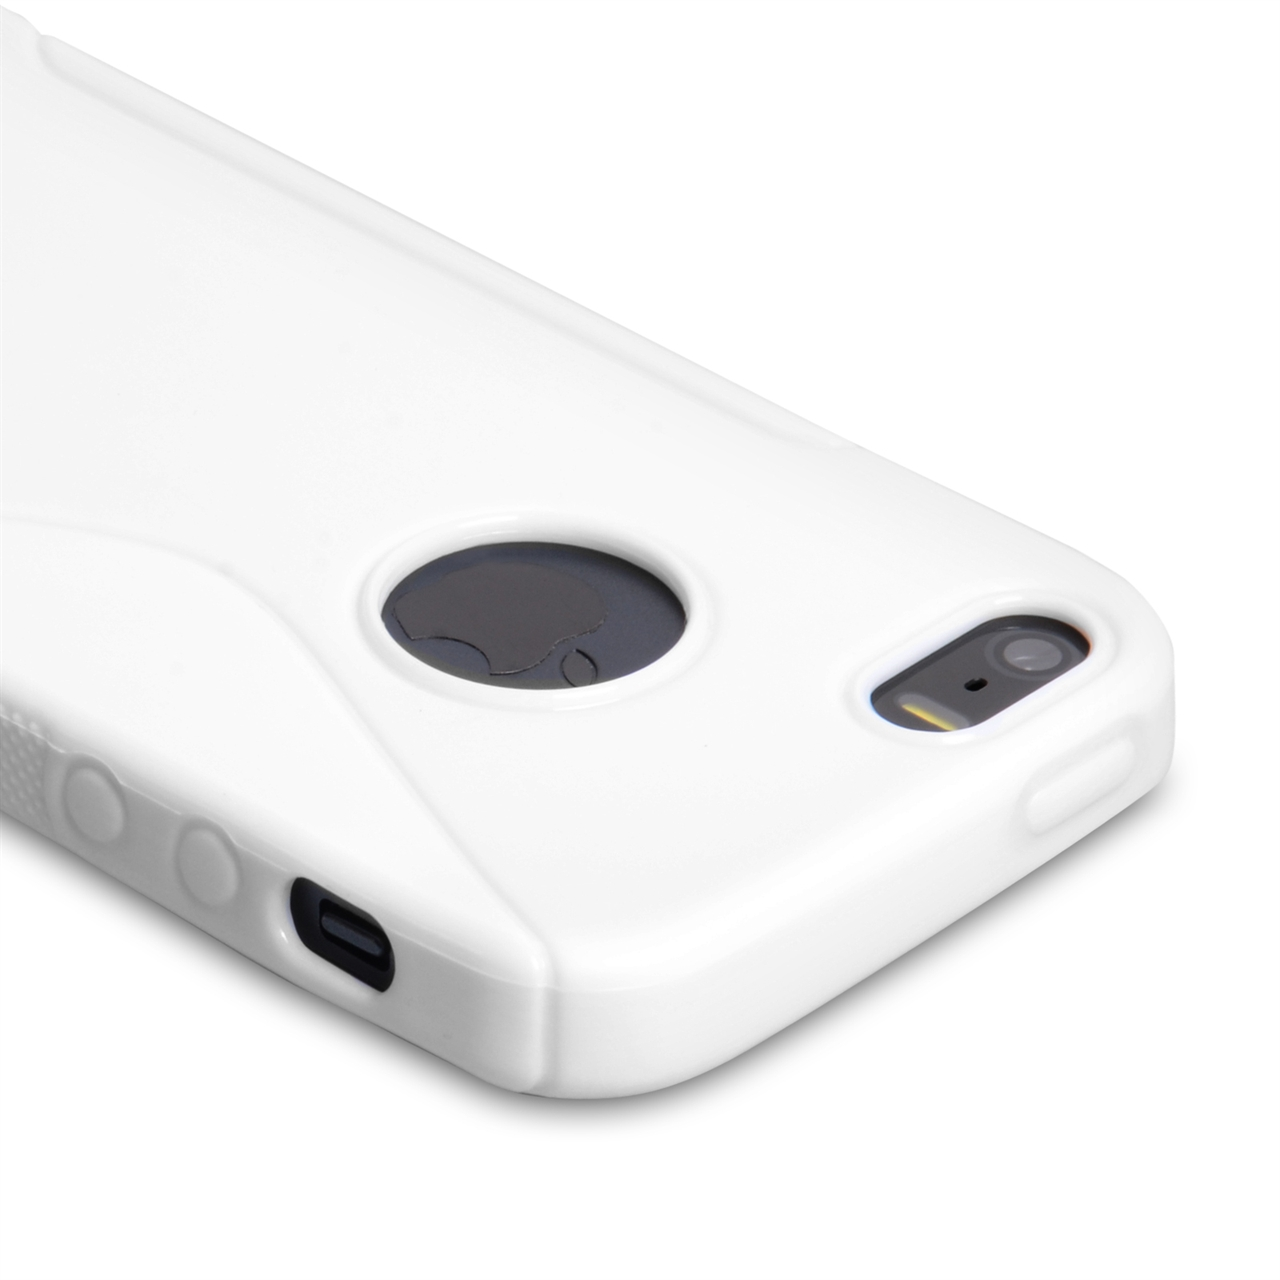 Caseflex Iphone 5 And 5s S-Line Gel Case - White